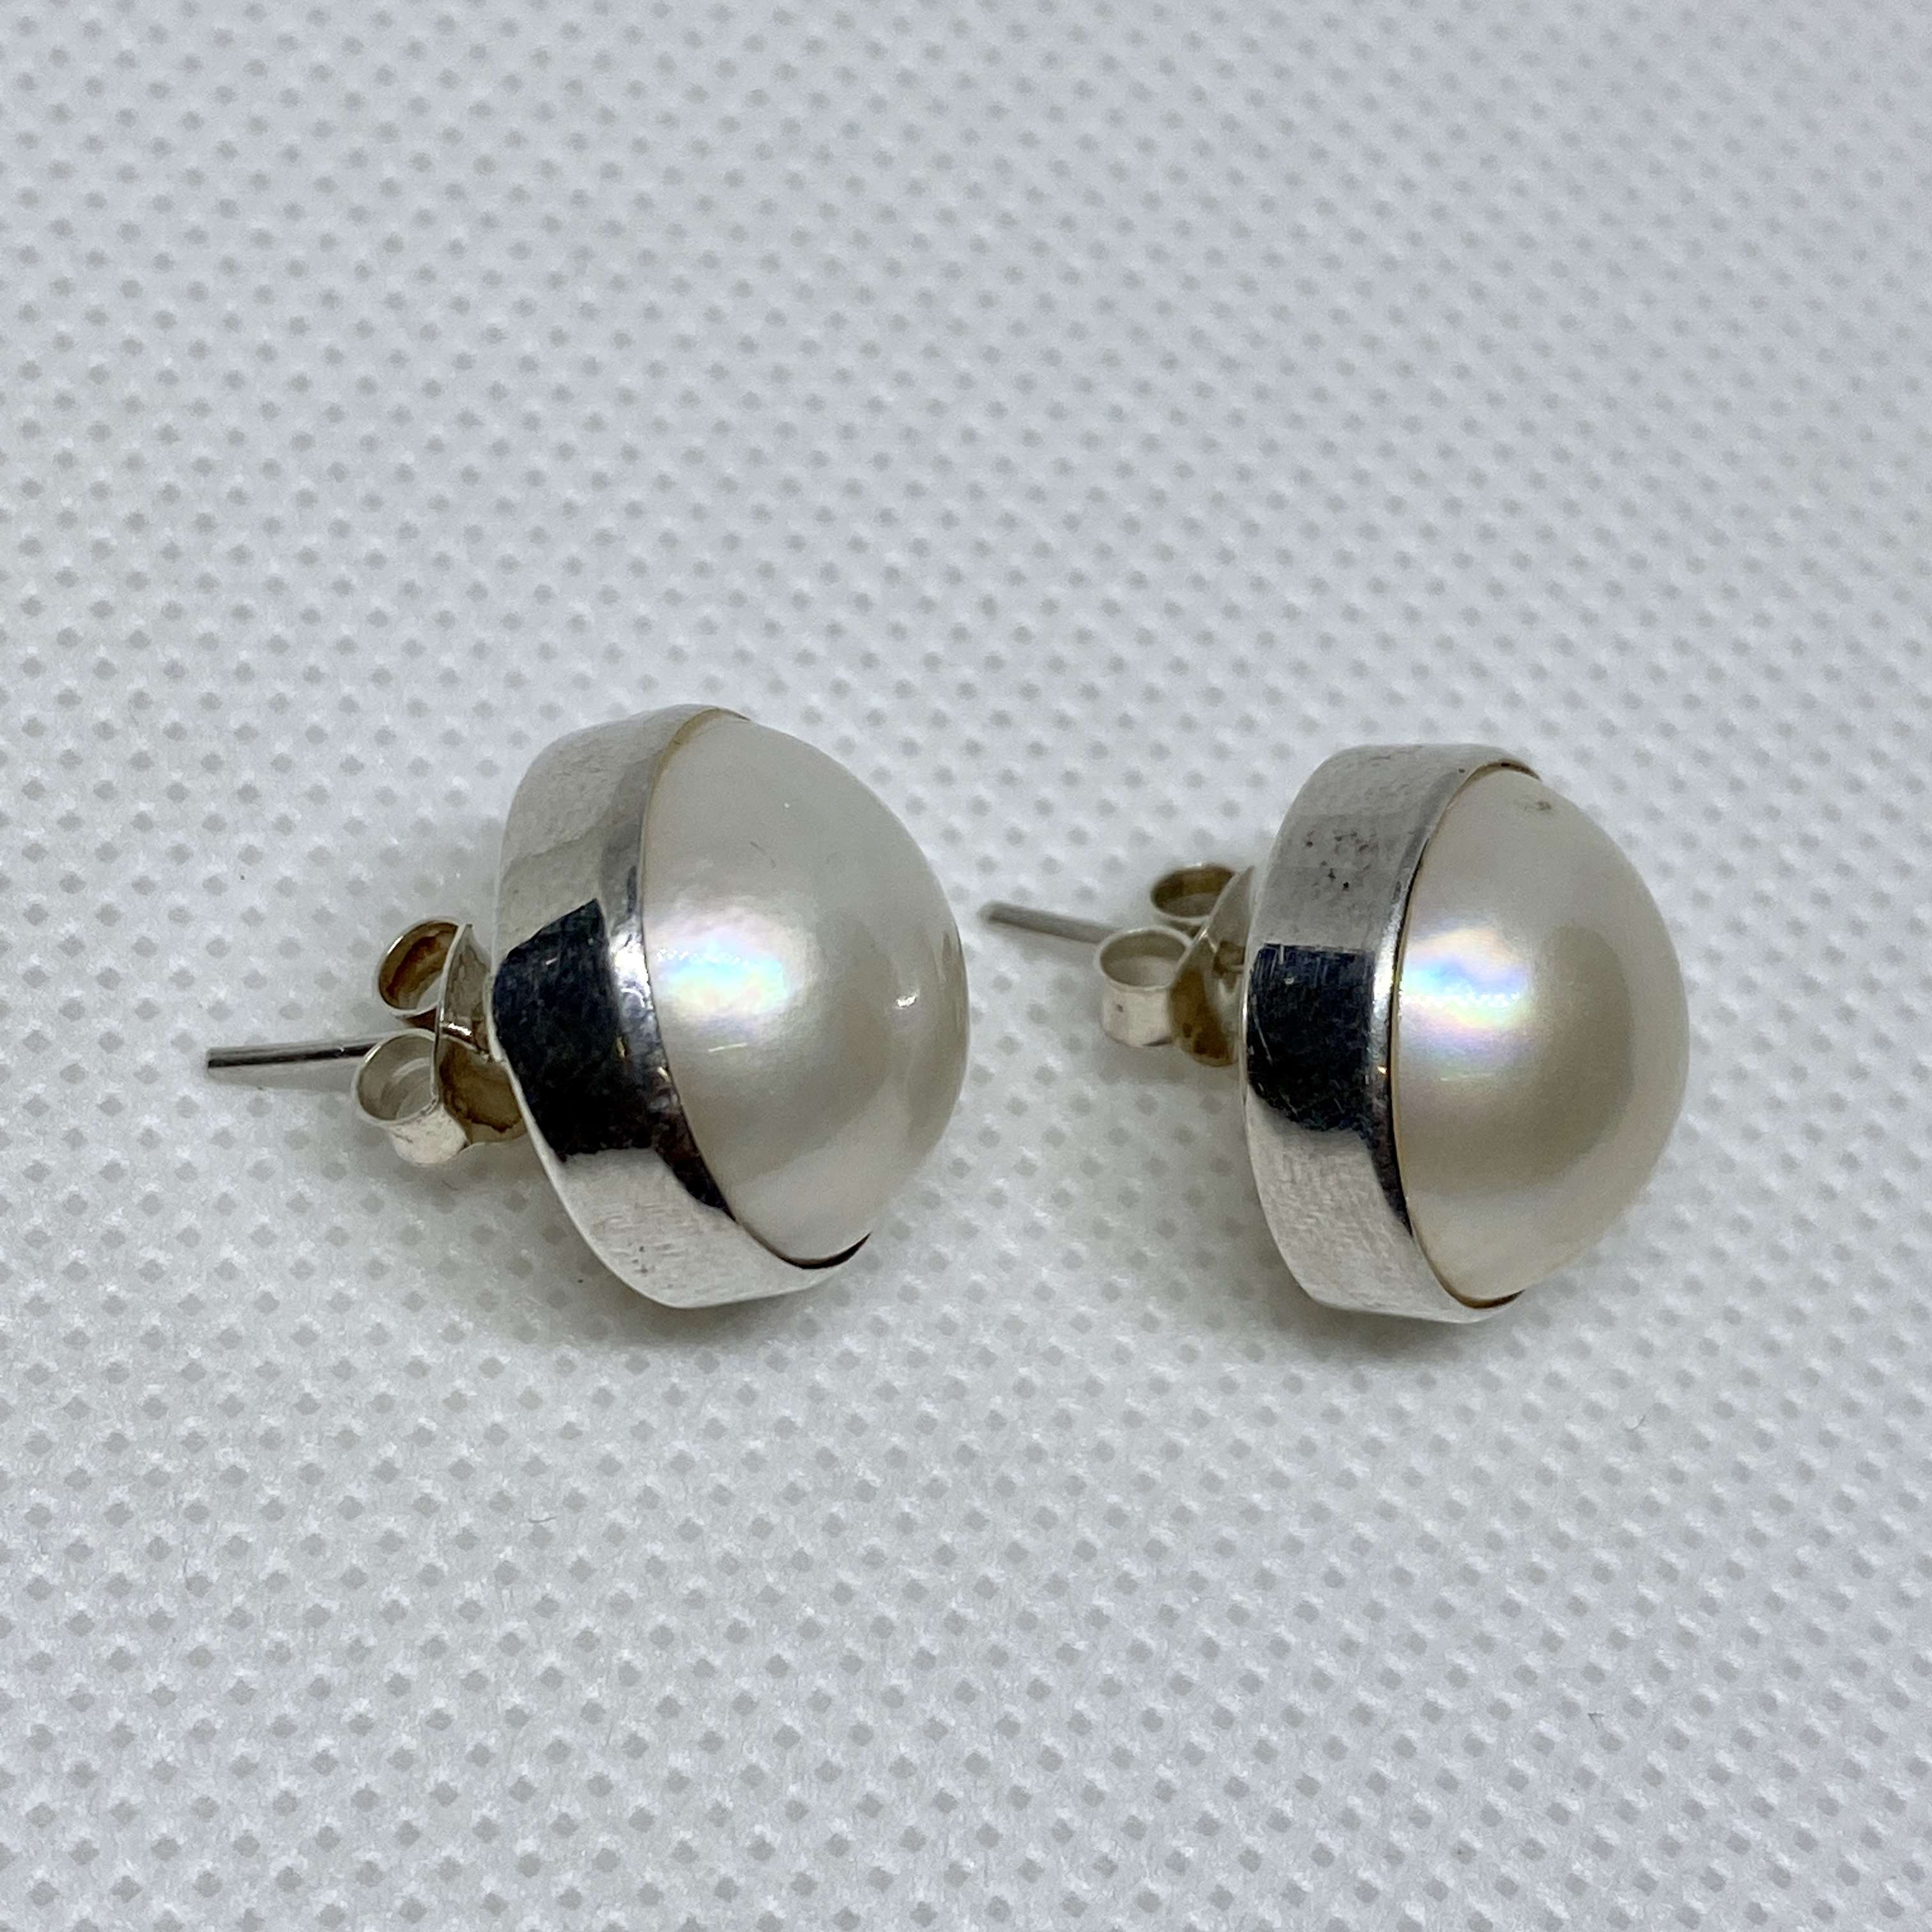 BALI SILVER EARRINGS WITH WHITE MABE PEARL